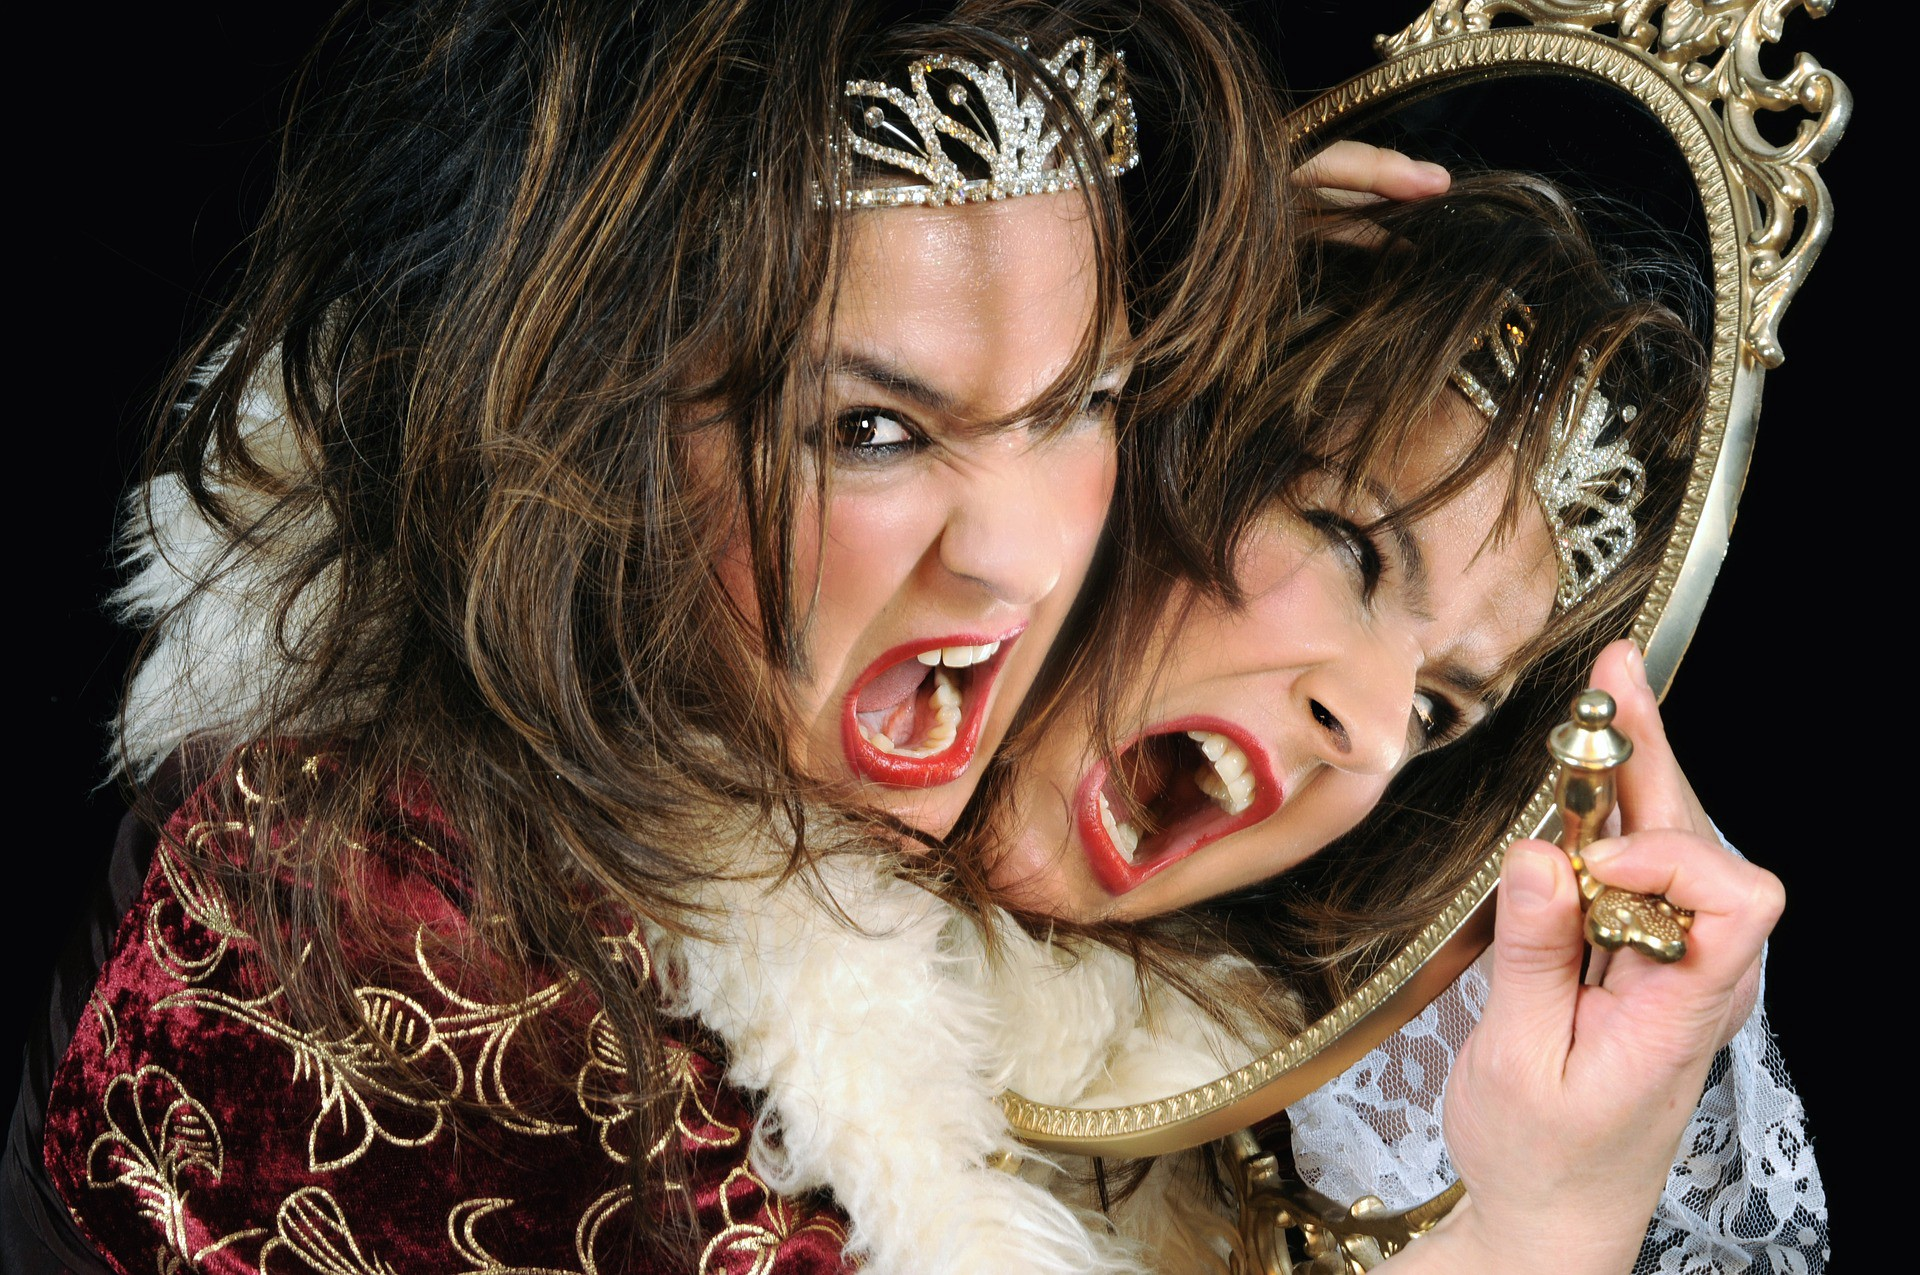 enraged narcissistic woman holding mirror to face